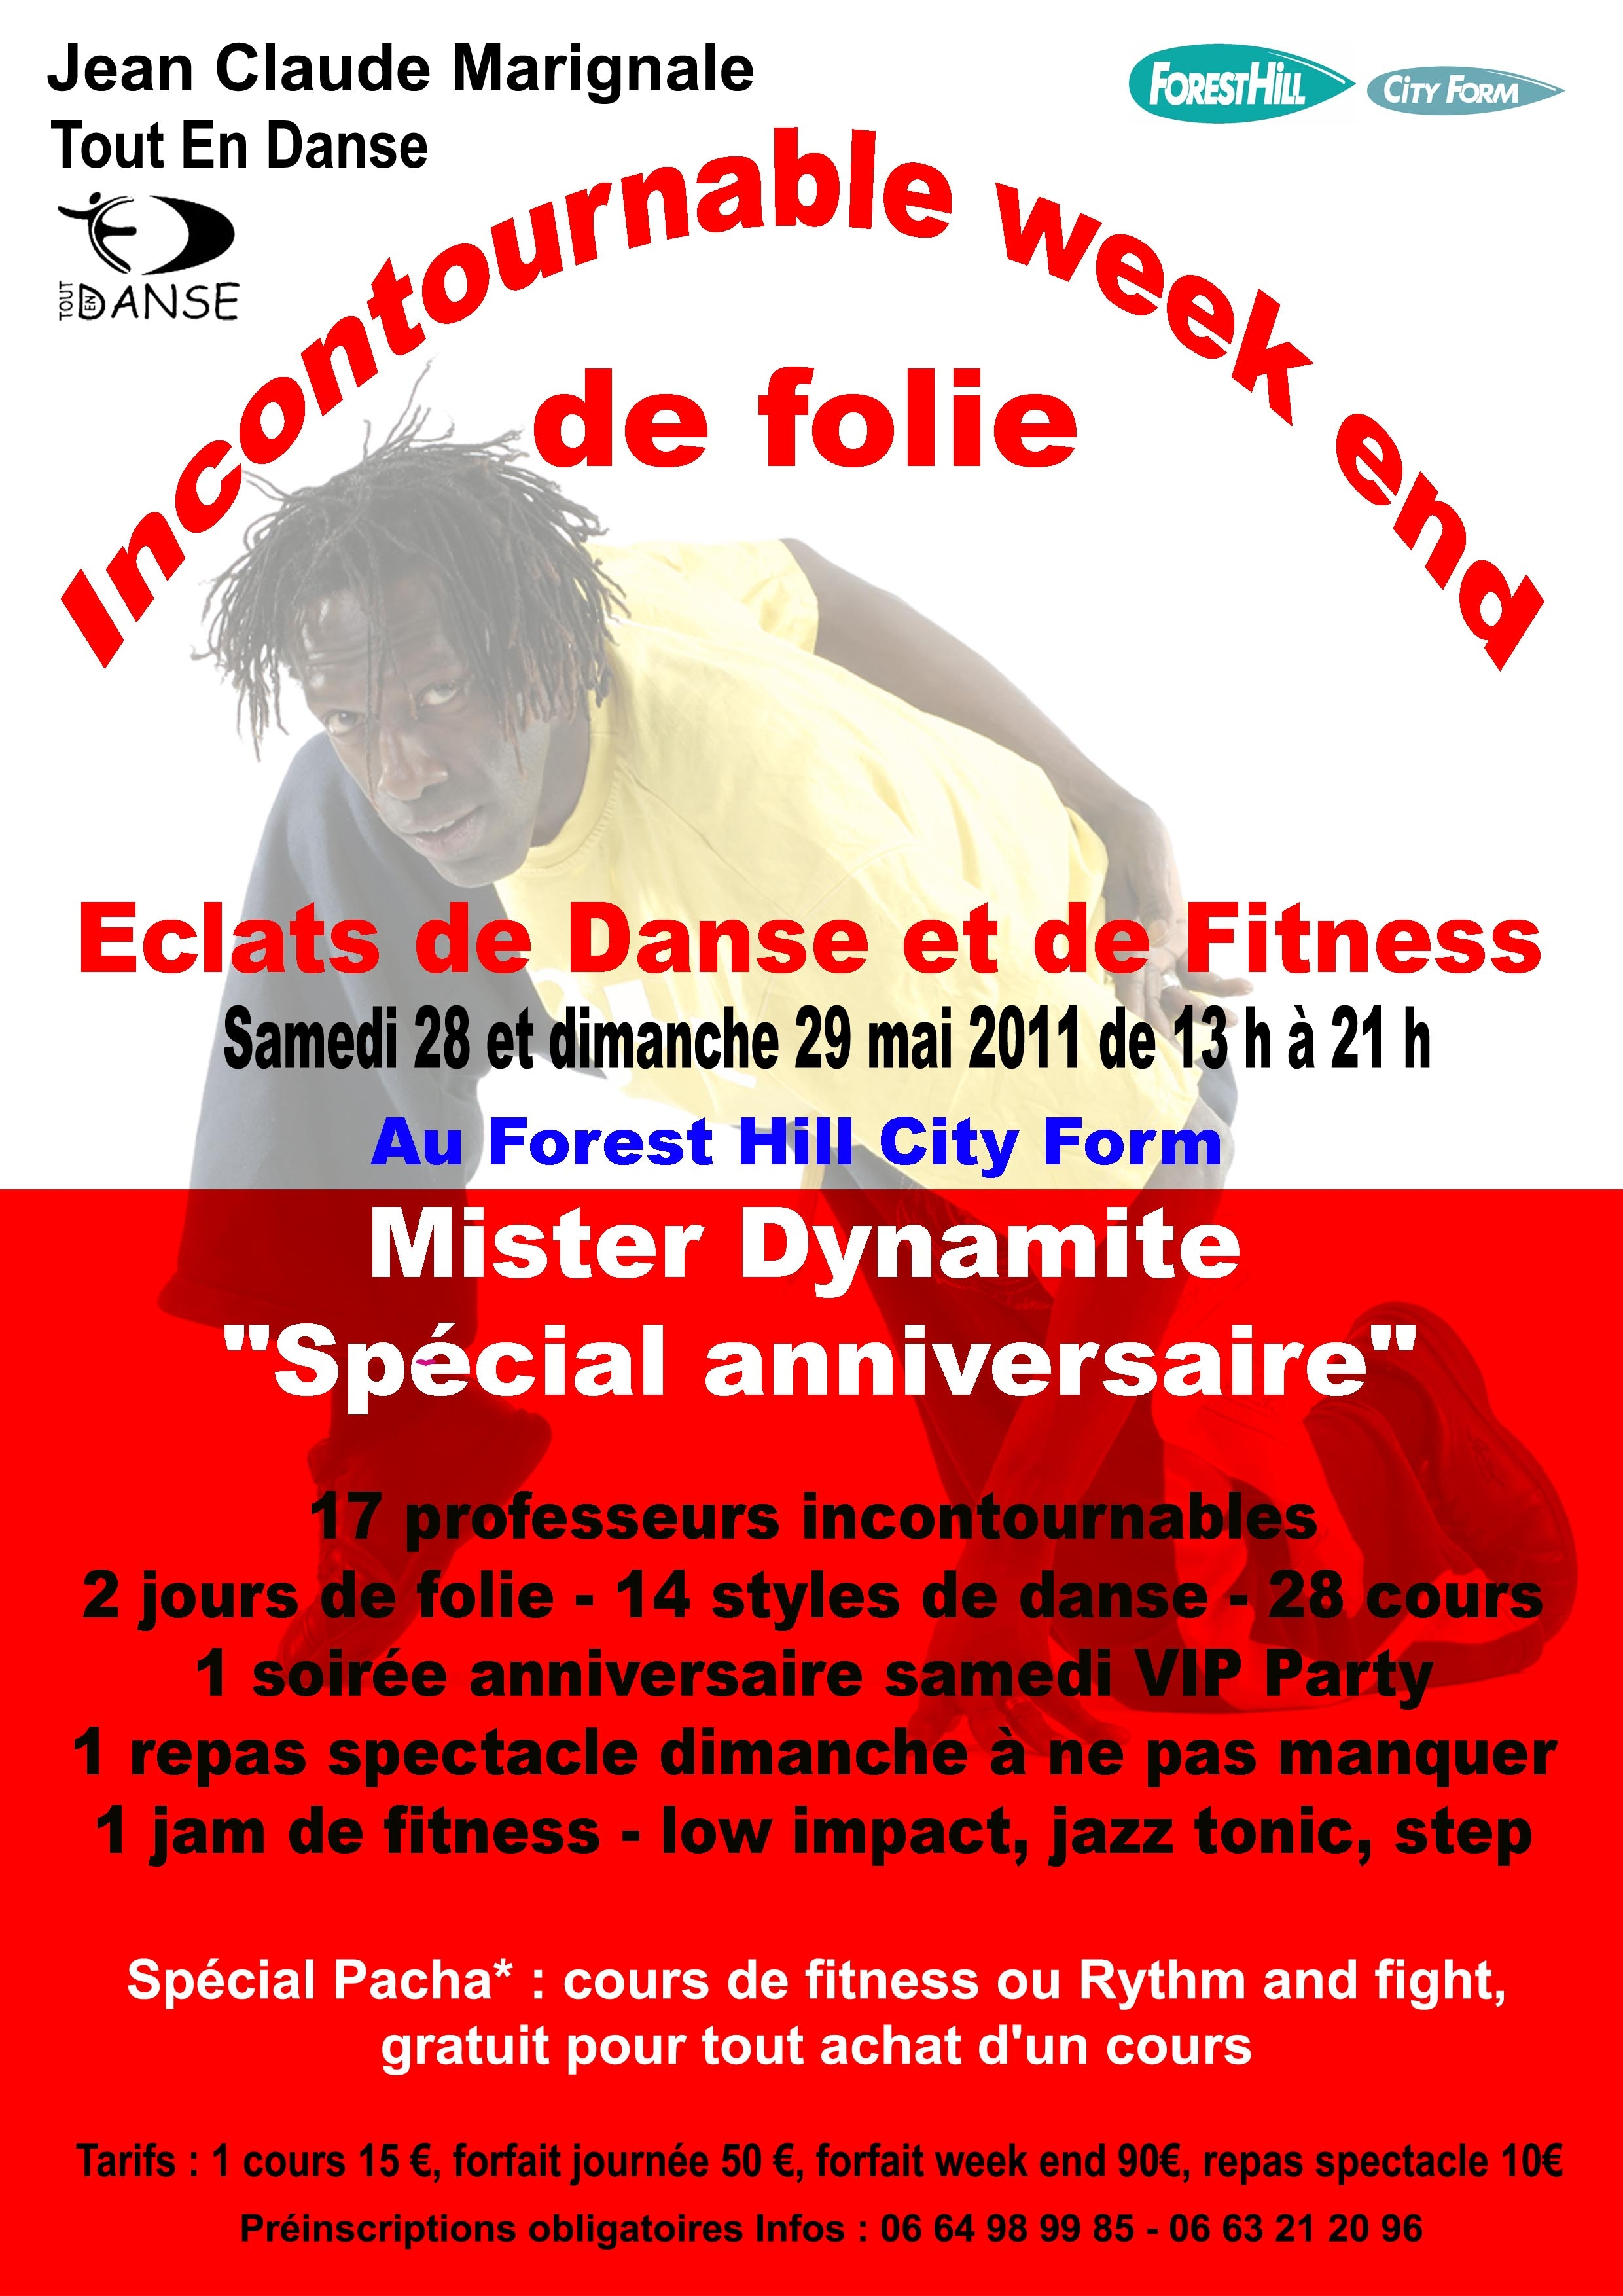 affiche-forest-hill-bleu-incroyable-enumeration-special-pacha.jpg